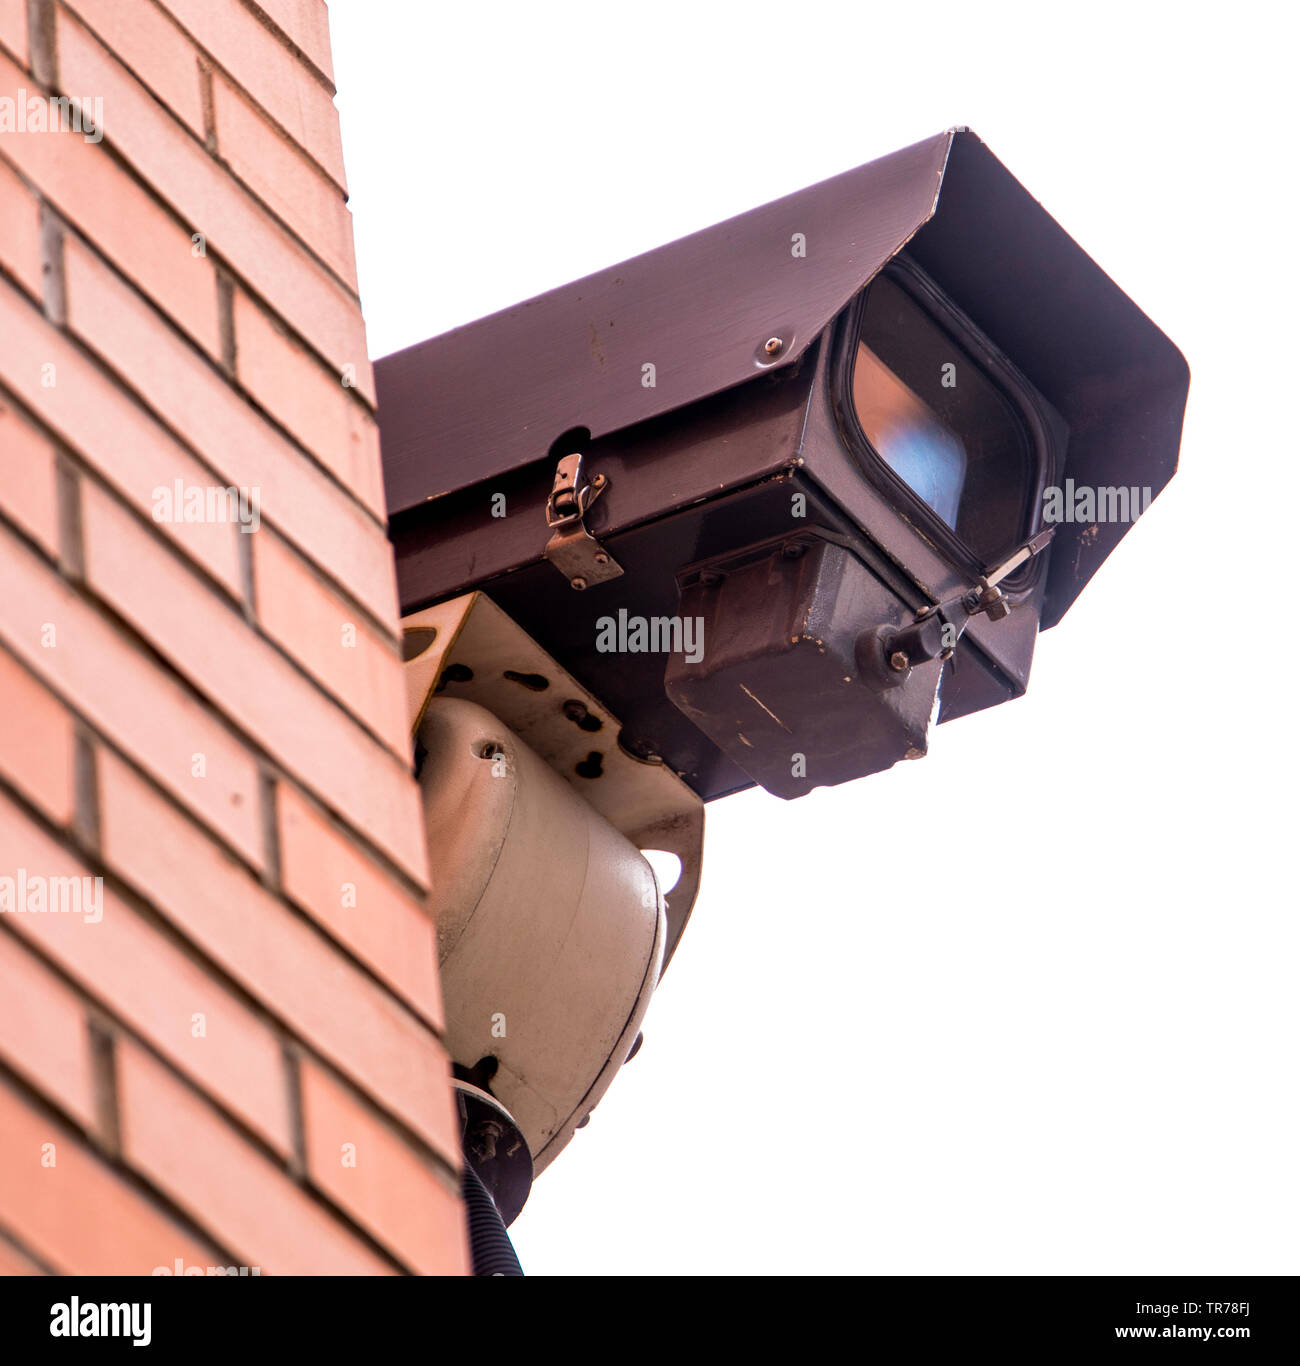 You are being watched closely by a wall mounted CCTV Camera - Stock Image